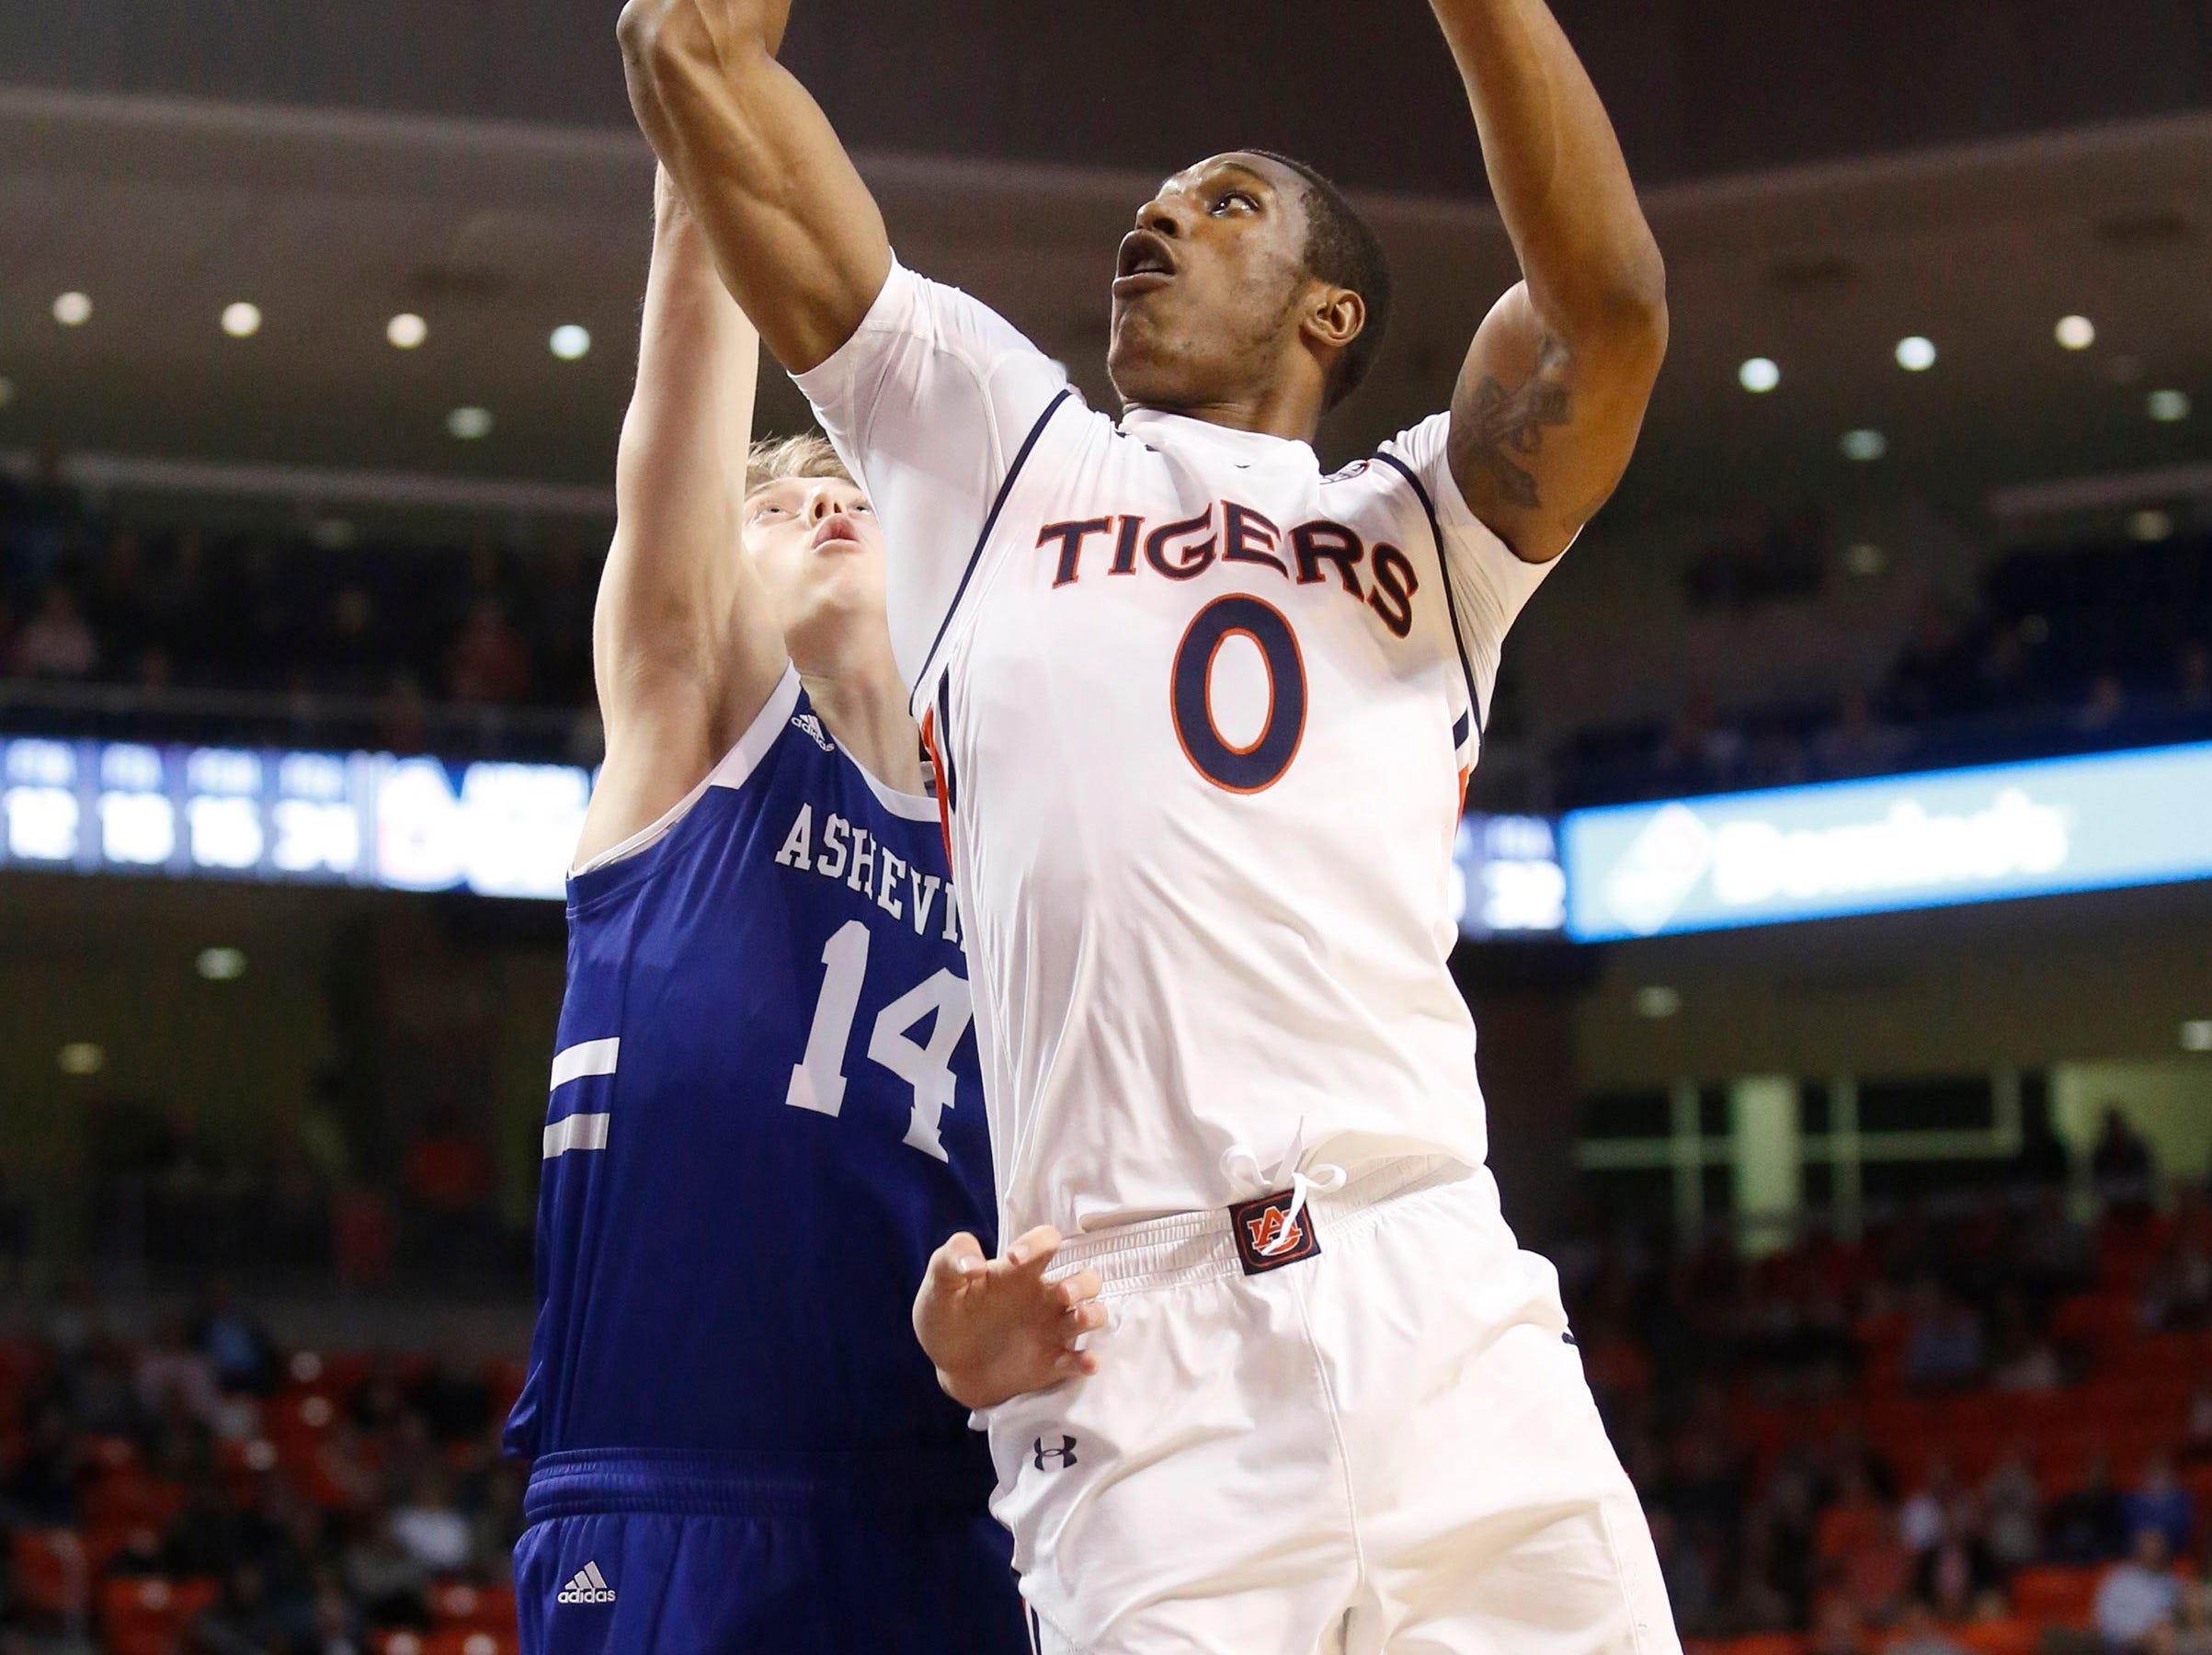 Dec 4, 2018; Auburn, AL, USA; Auburn Tigers forward Horace Spencer (0) shoots over UNC-Asheville Bulldogs forward Luke Lawson (14) during the second half at Auburn Arena. Mandatory Credit: John Reed-USA TODAY Sports